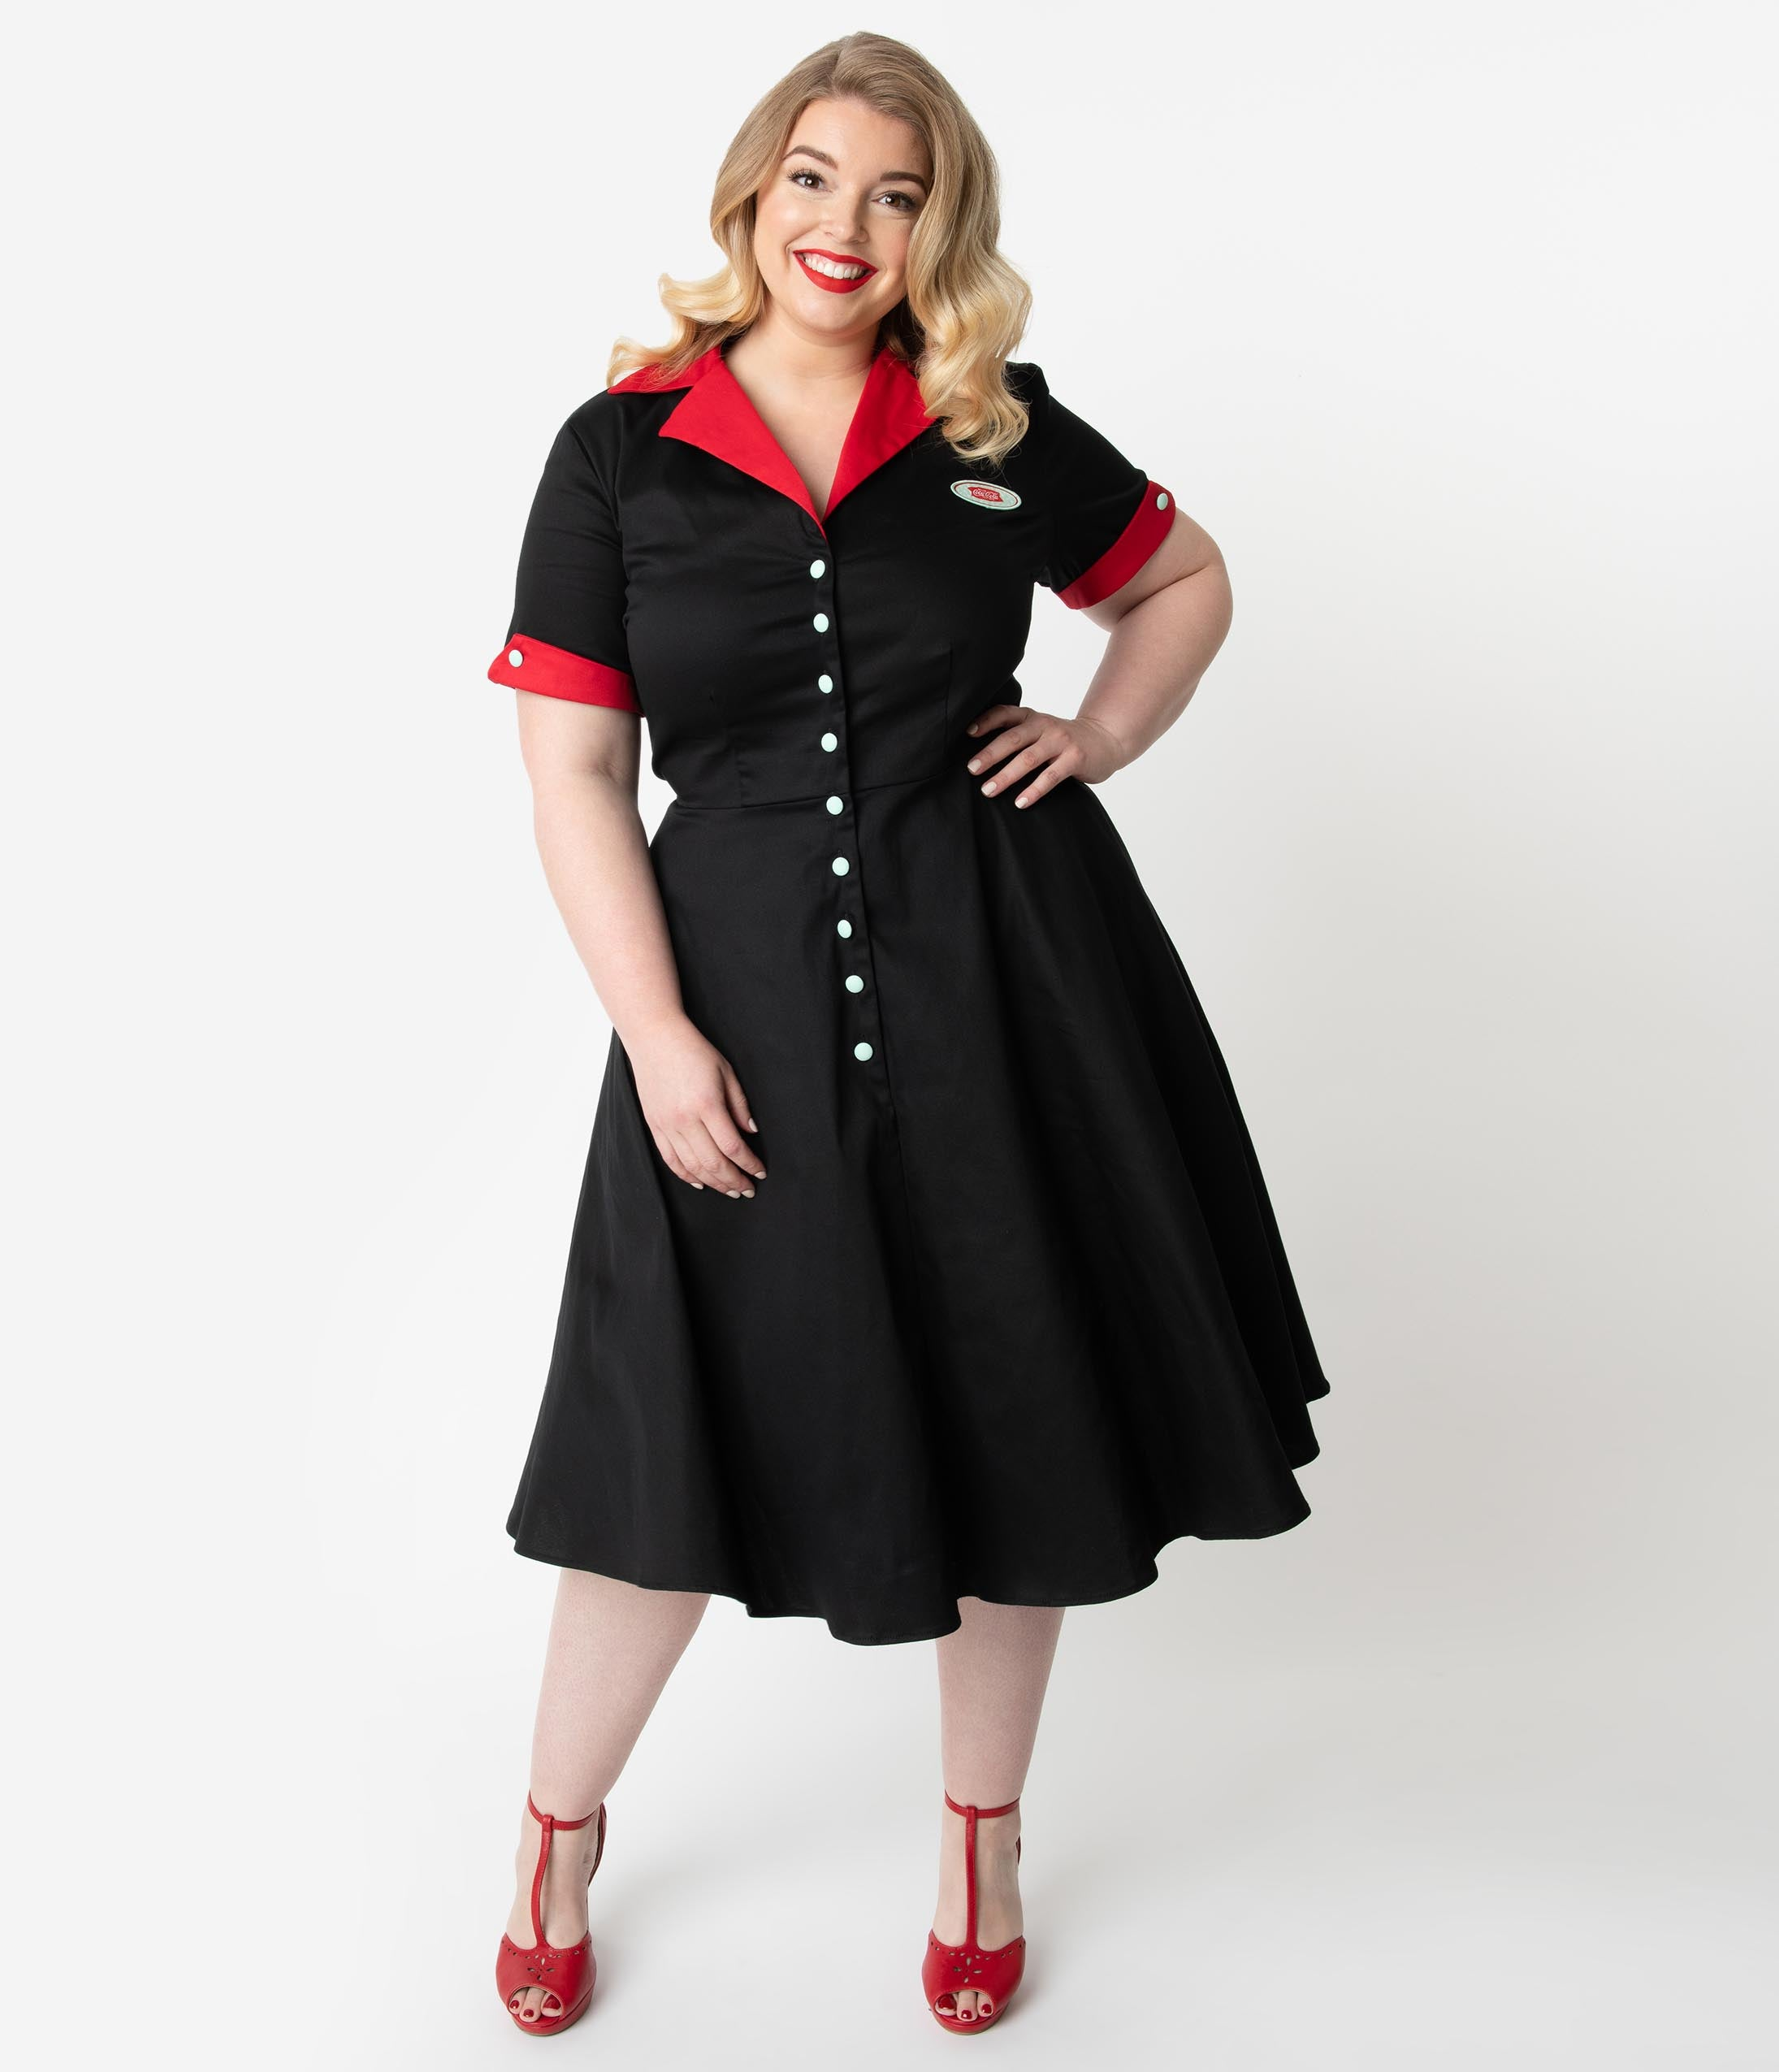 1950s Dresses, 50s Dresses | 1950s Style Dresses Coca-Cola Collection By Unique Vintage Plus Size 1950S Black  Red Fizzy Swing Diner Dress $118.00 AT vintagedancer.com